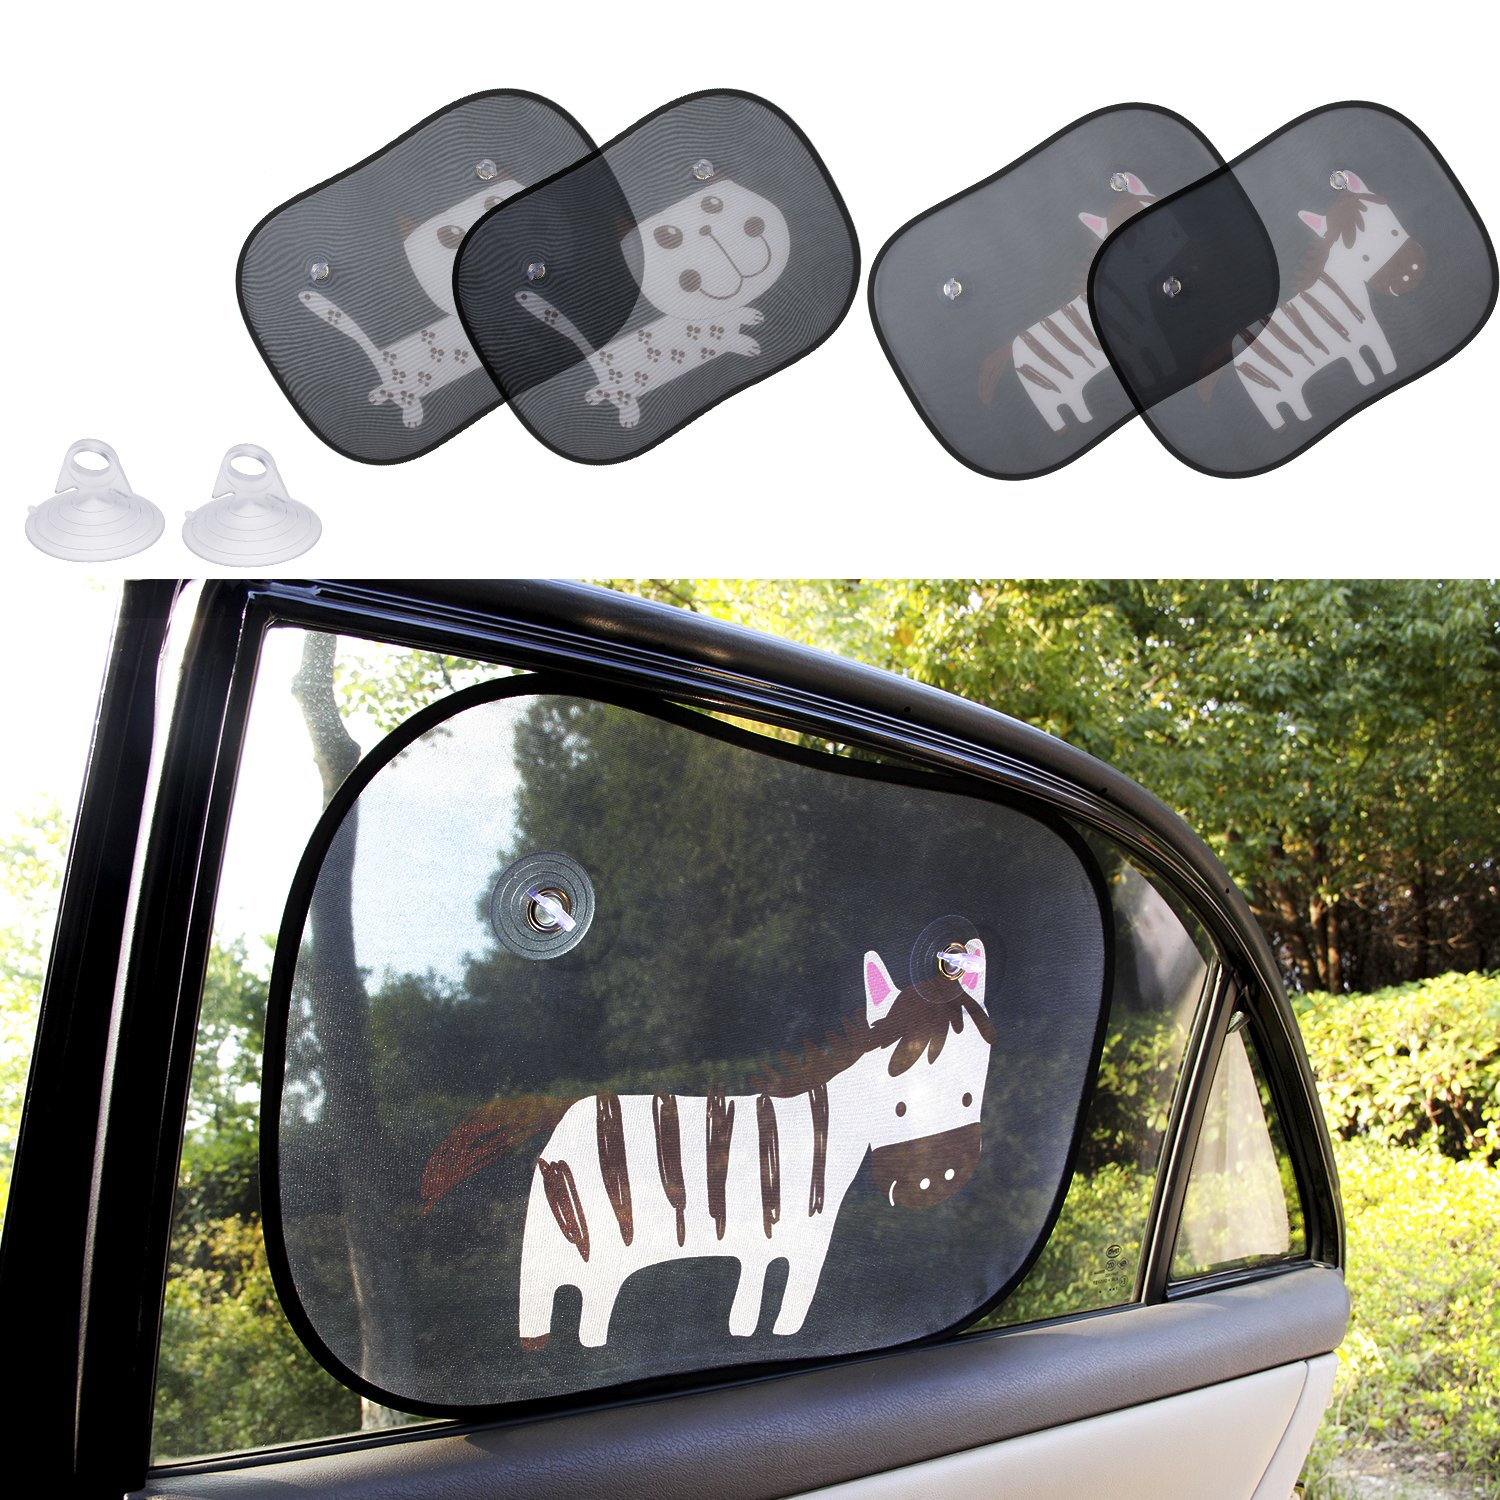 Biubee 4 Packs Car Window Sun Shade for Baby -19.7'' x 15'' with 2 Extra Suction Cups Safety Car Window Blinds and Sheild, Protect Baby & Infants from Sun, Glare And UV Rays